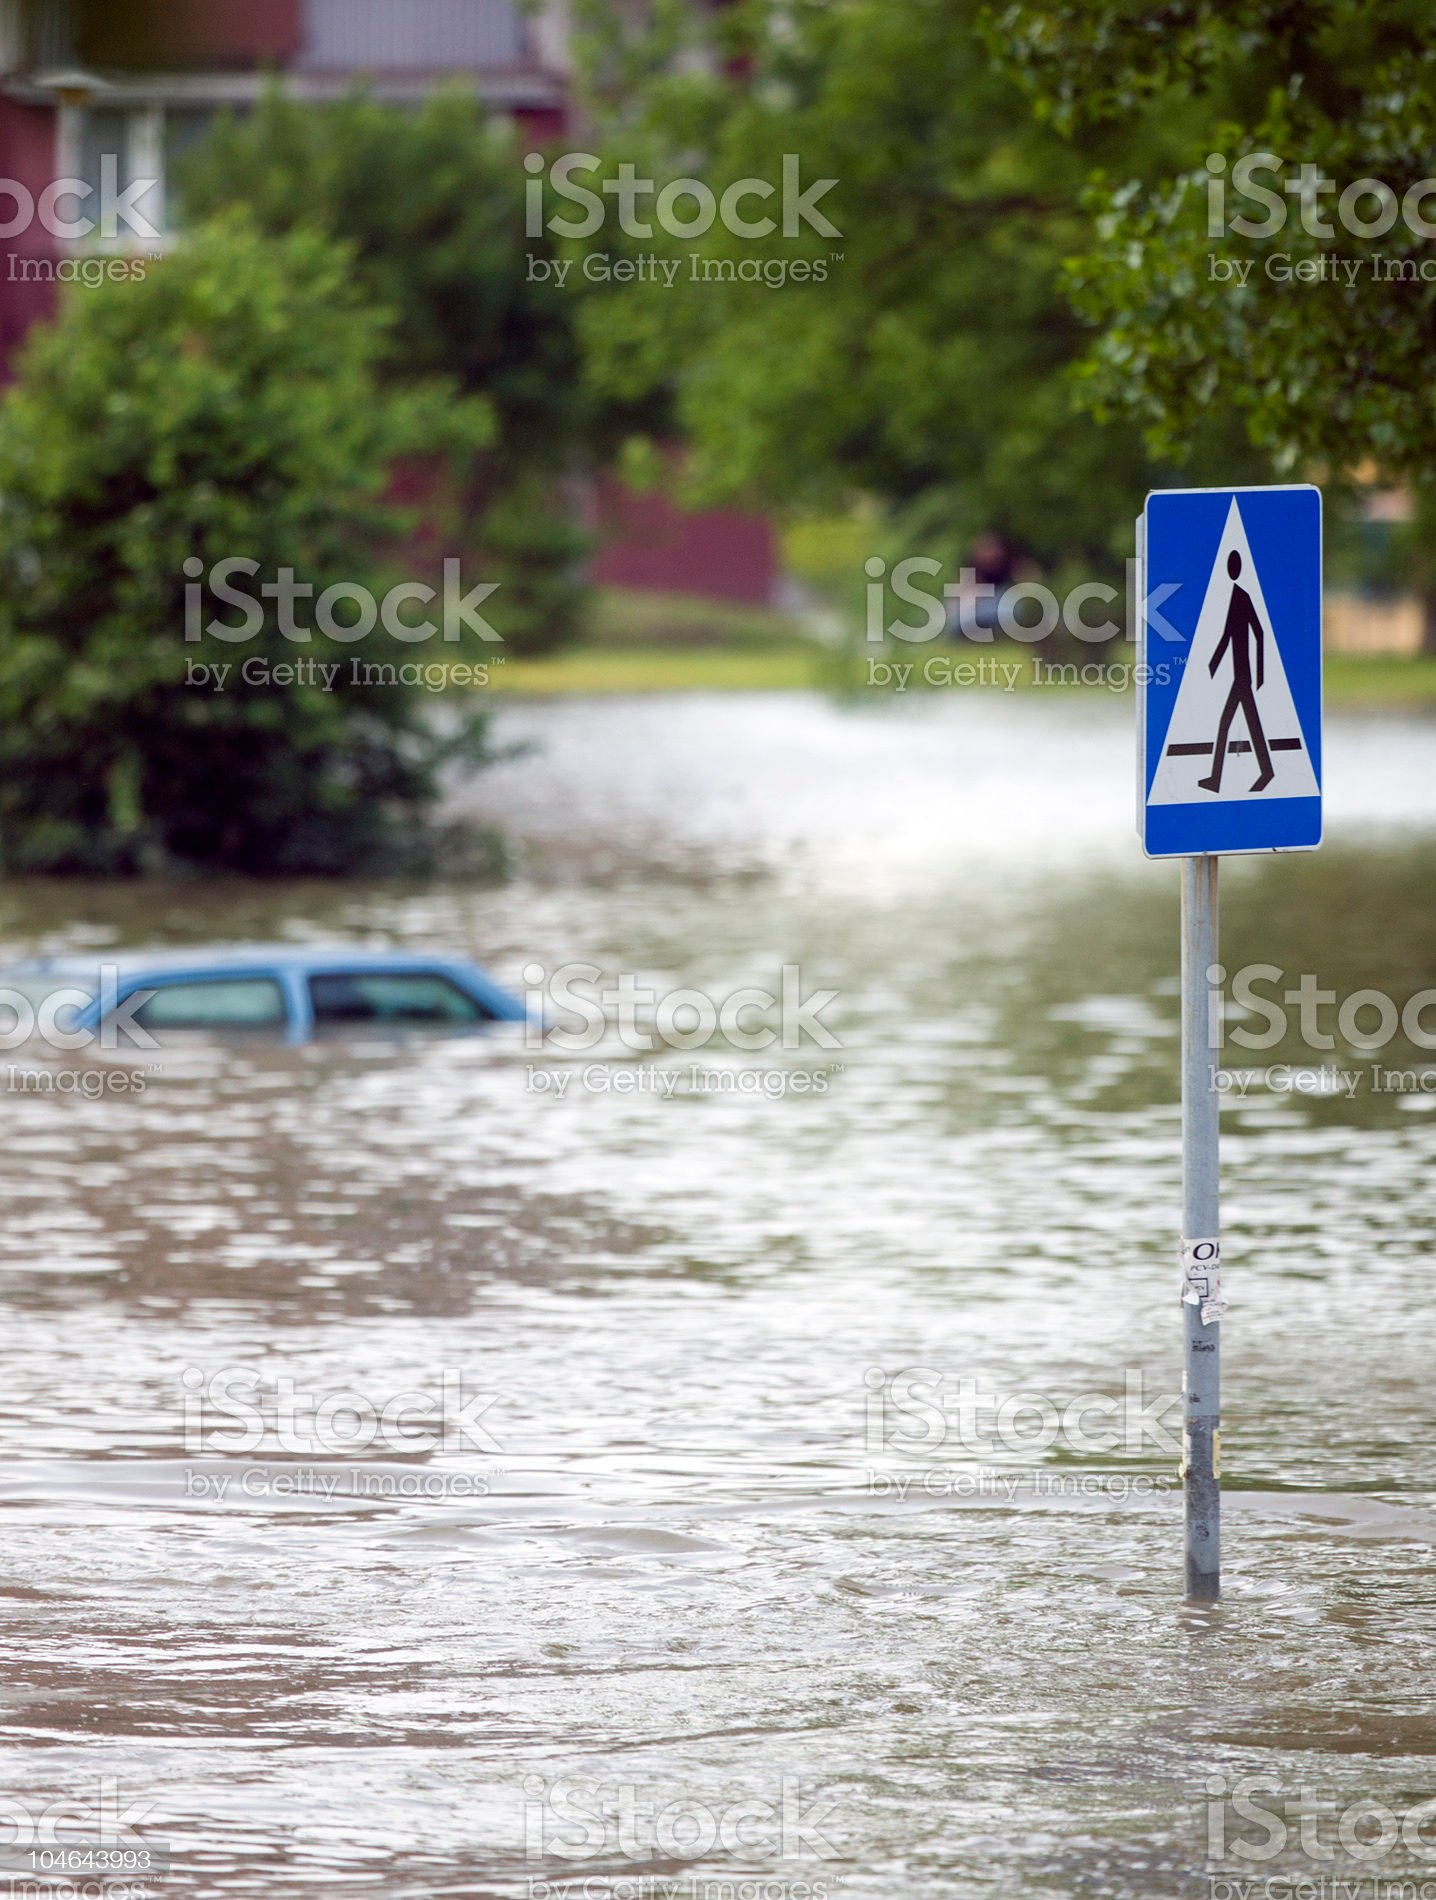 Flood in the city royalty-free stock photo